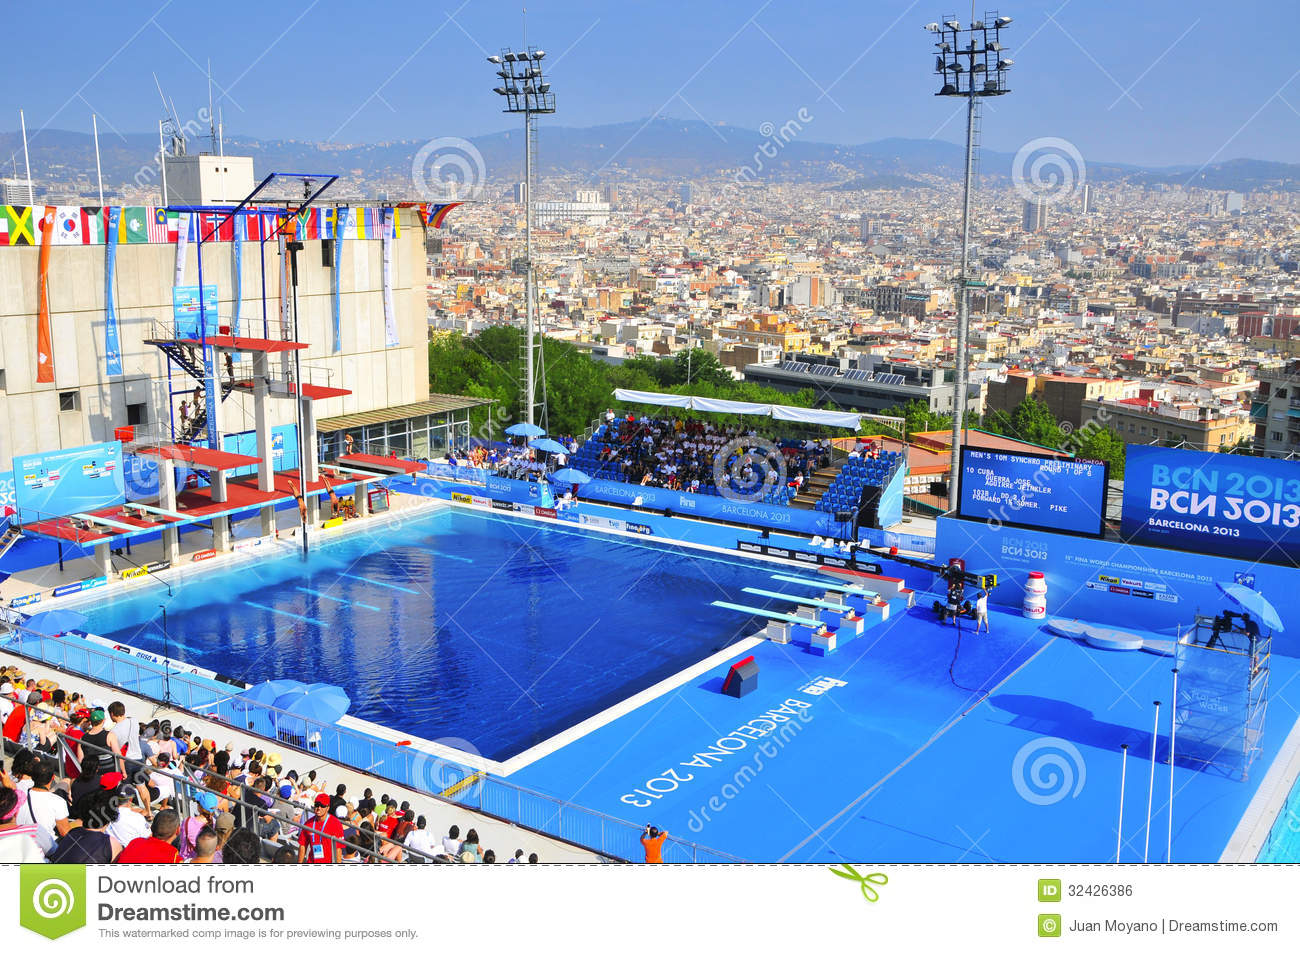 Piscina Municipal Montjuic 2013 World Aquatics Championships In Barcelona Spain